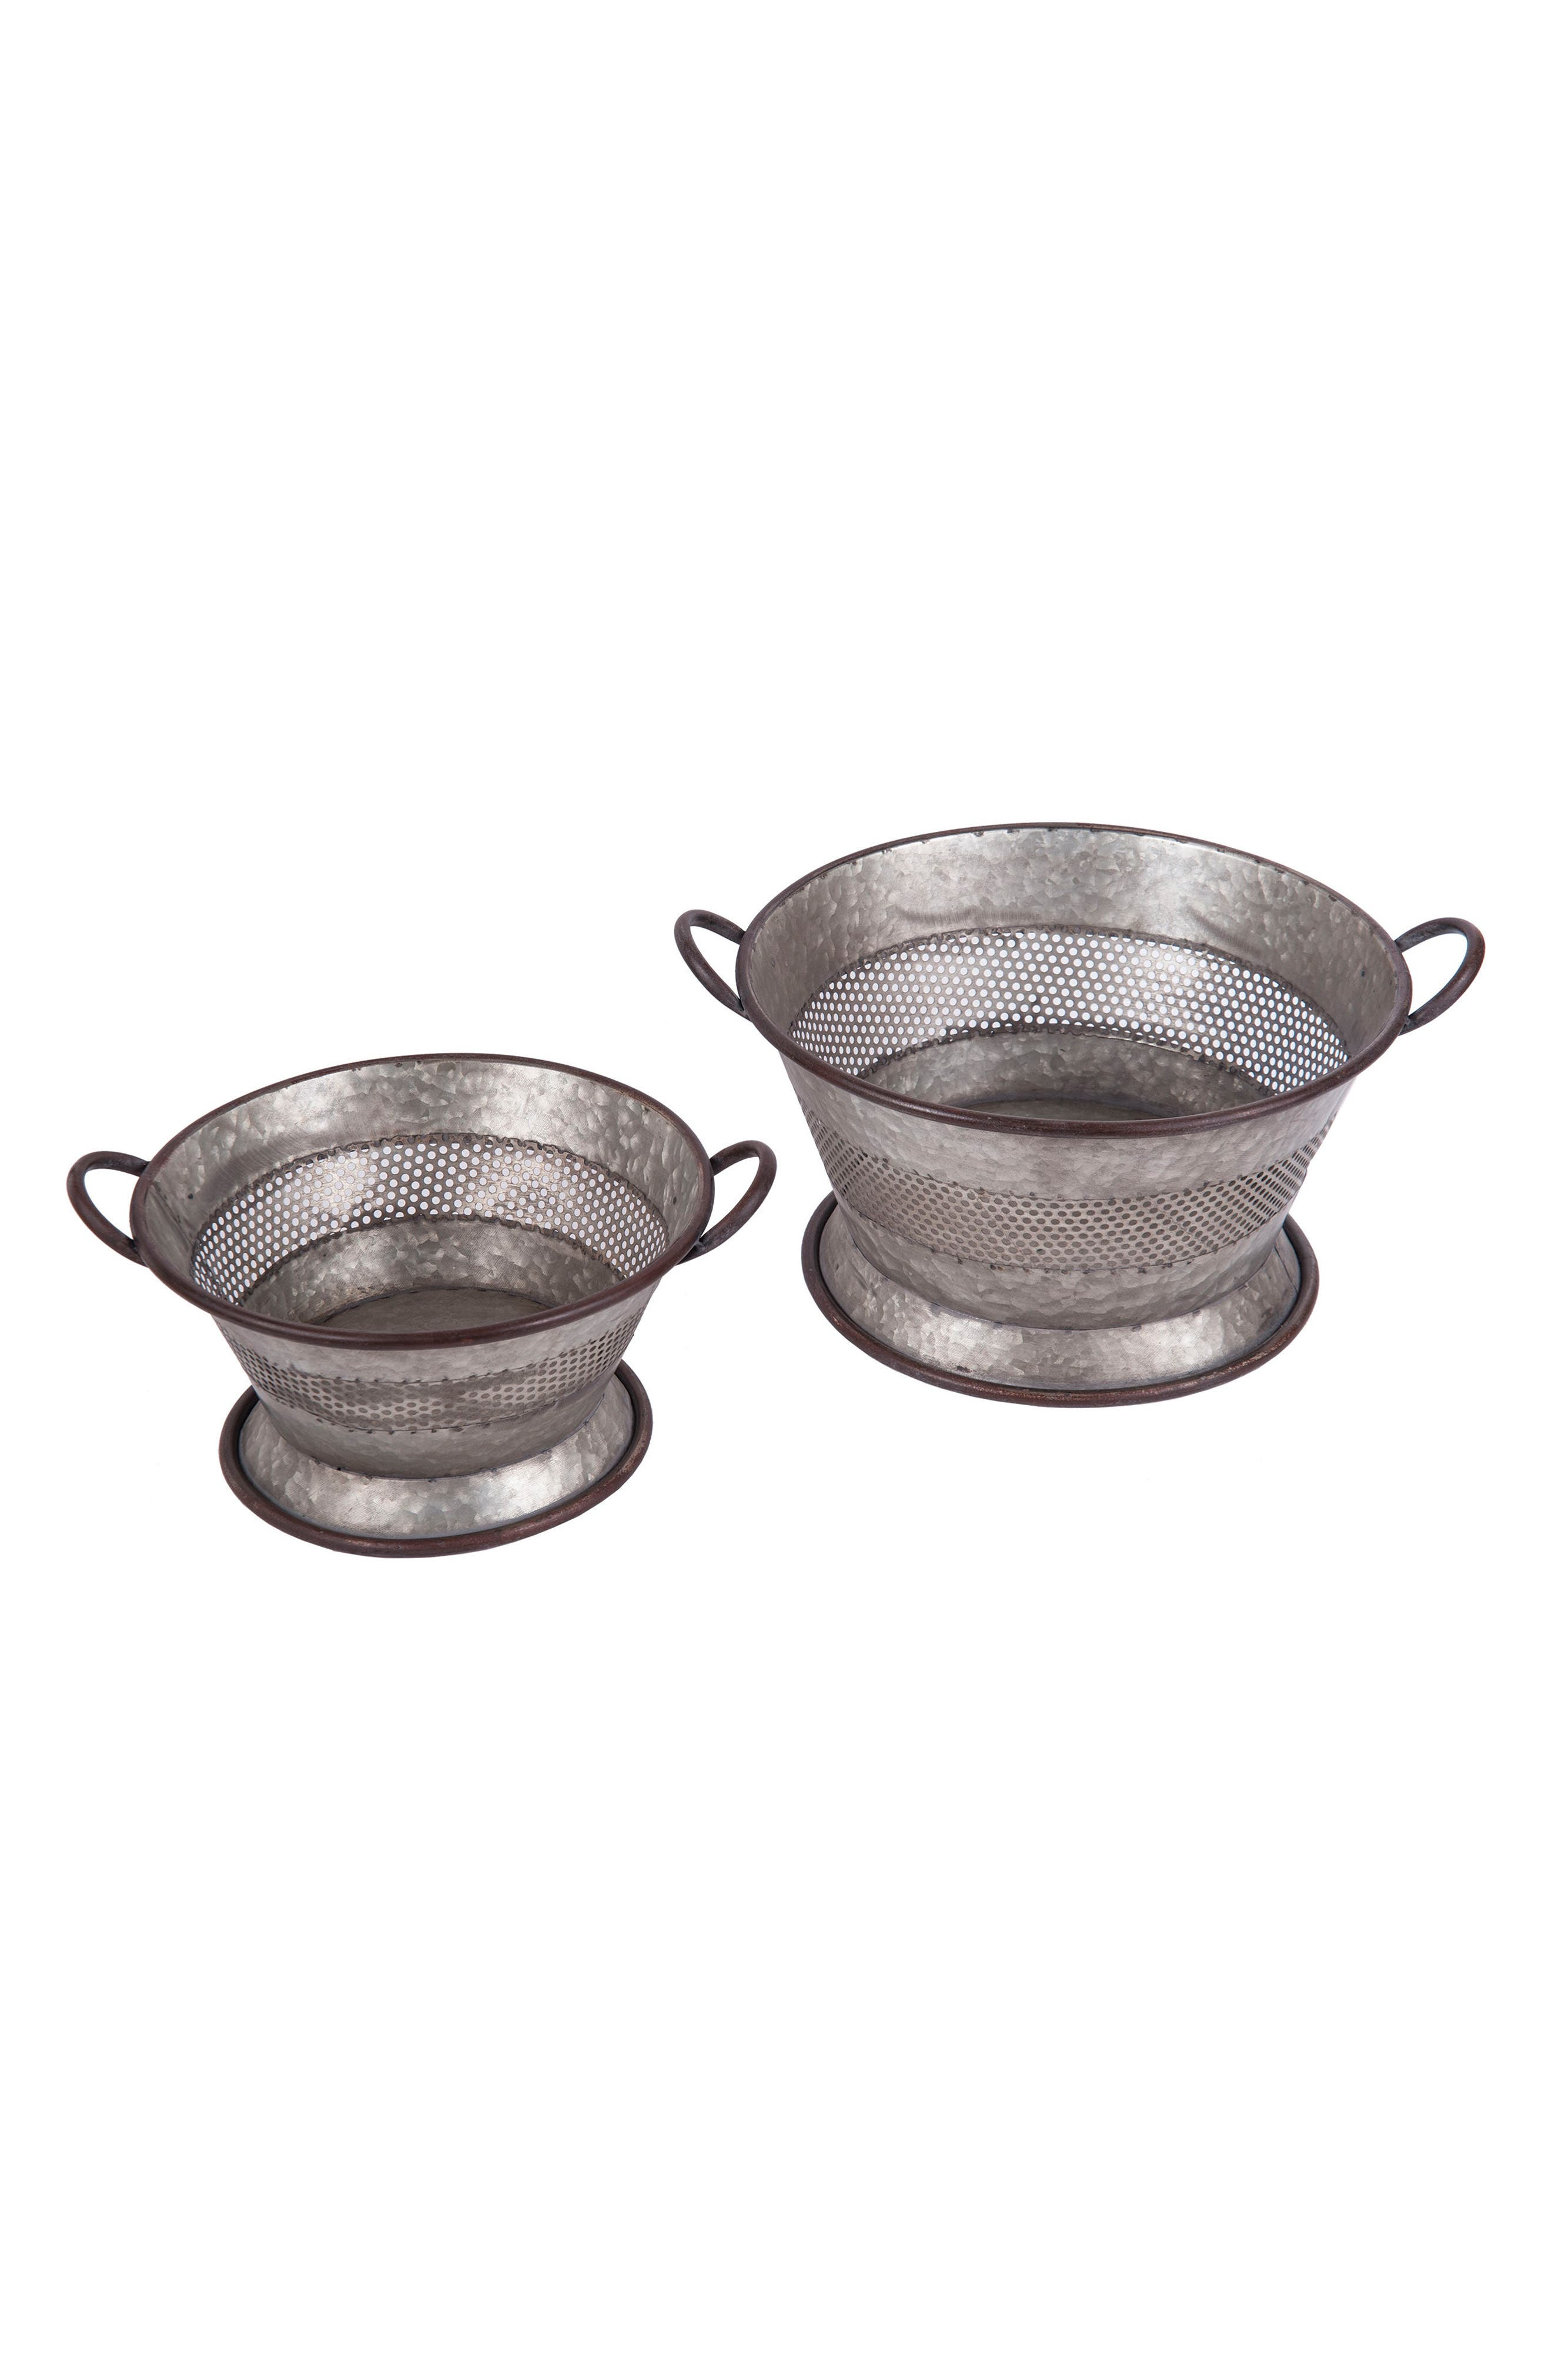 Main Image - Foreside Set of 2 Decorative Strainer Baskets